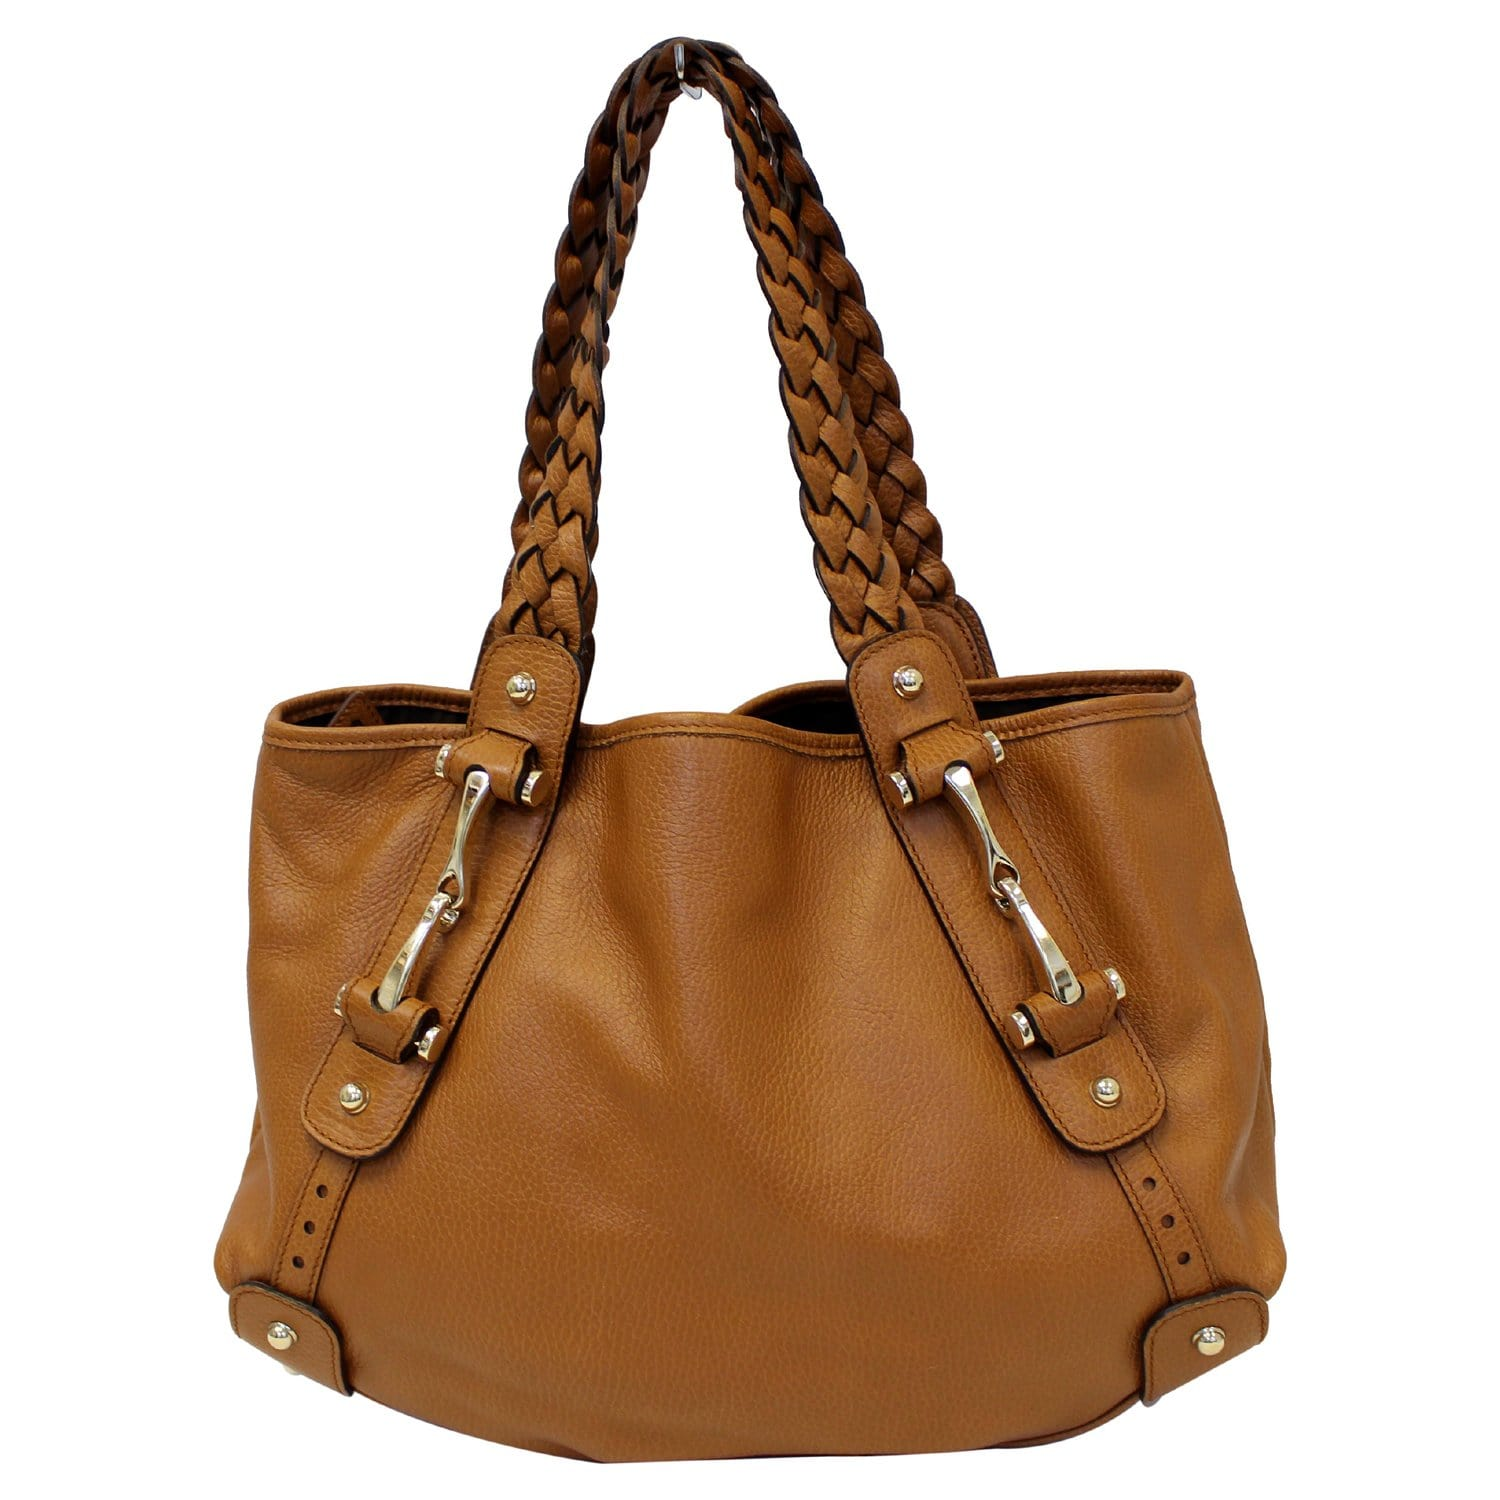 7161ea44b76 GUCCI Pelham Brown Leather Hobo Bag 336654-US